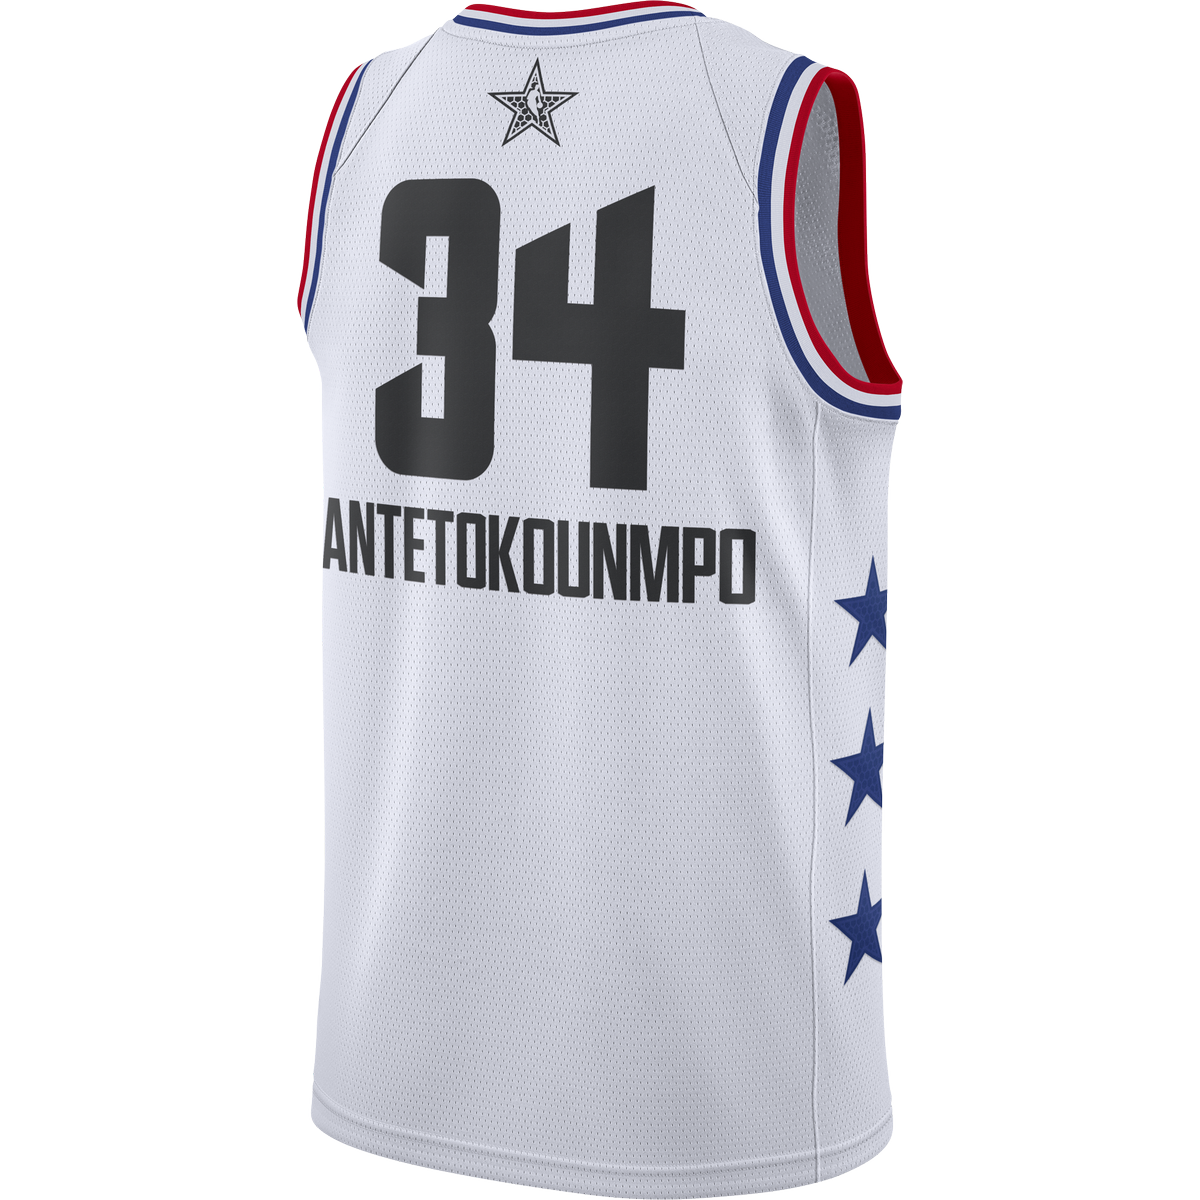 596eb44fe7ee Giannis Antetokounmpo 2019 All-Star Game Nike Swingman Jersey for  119.99  Fanatics